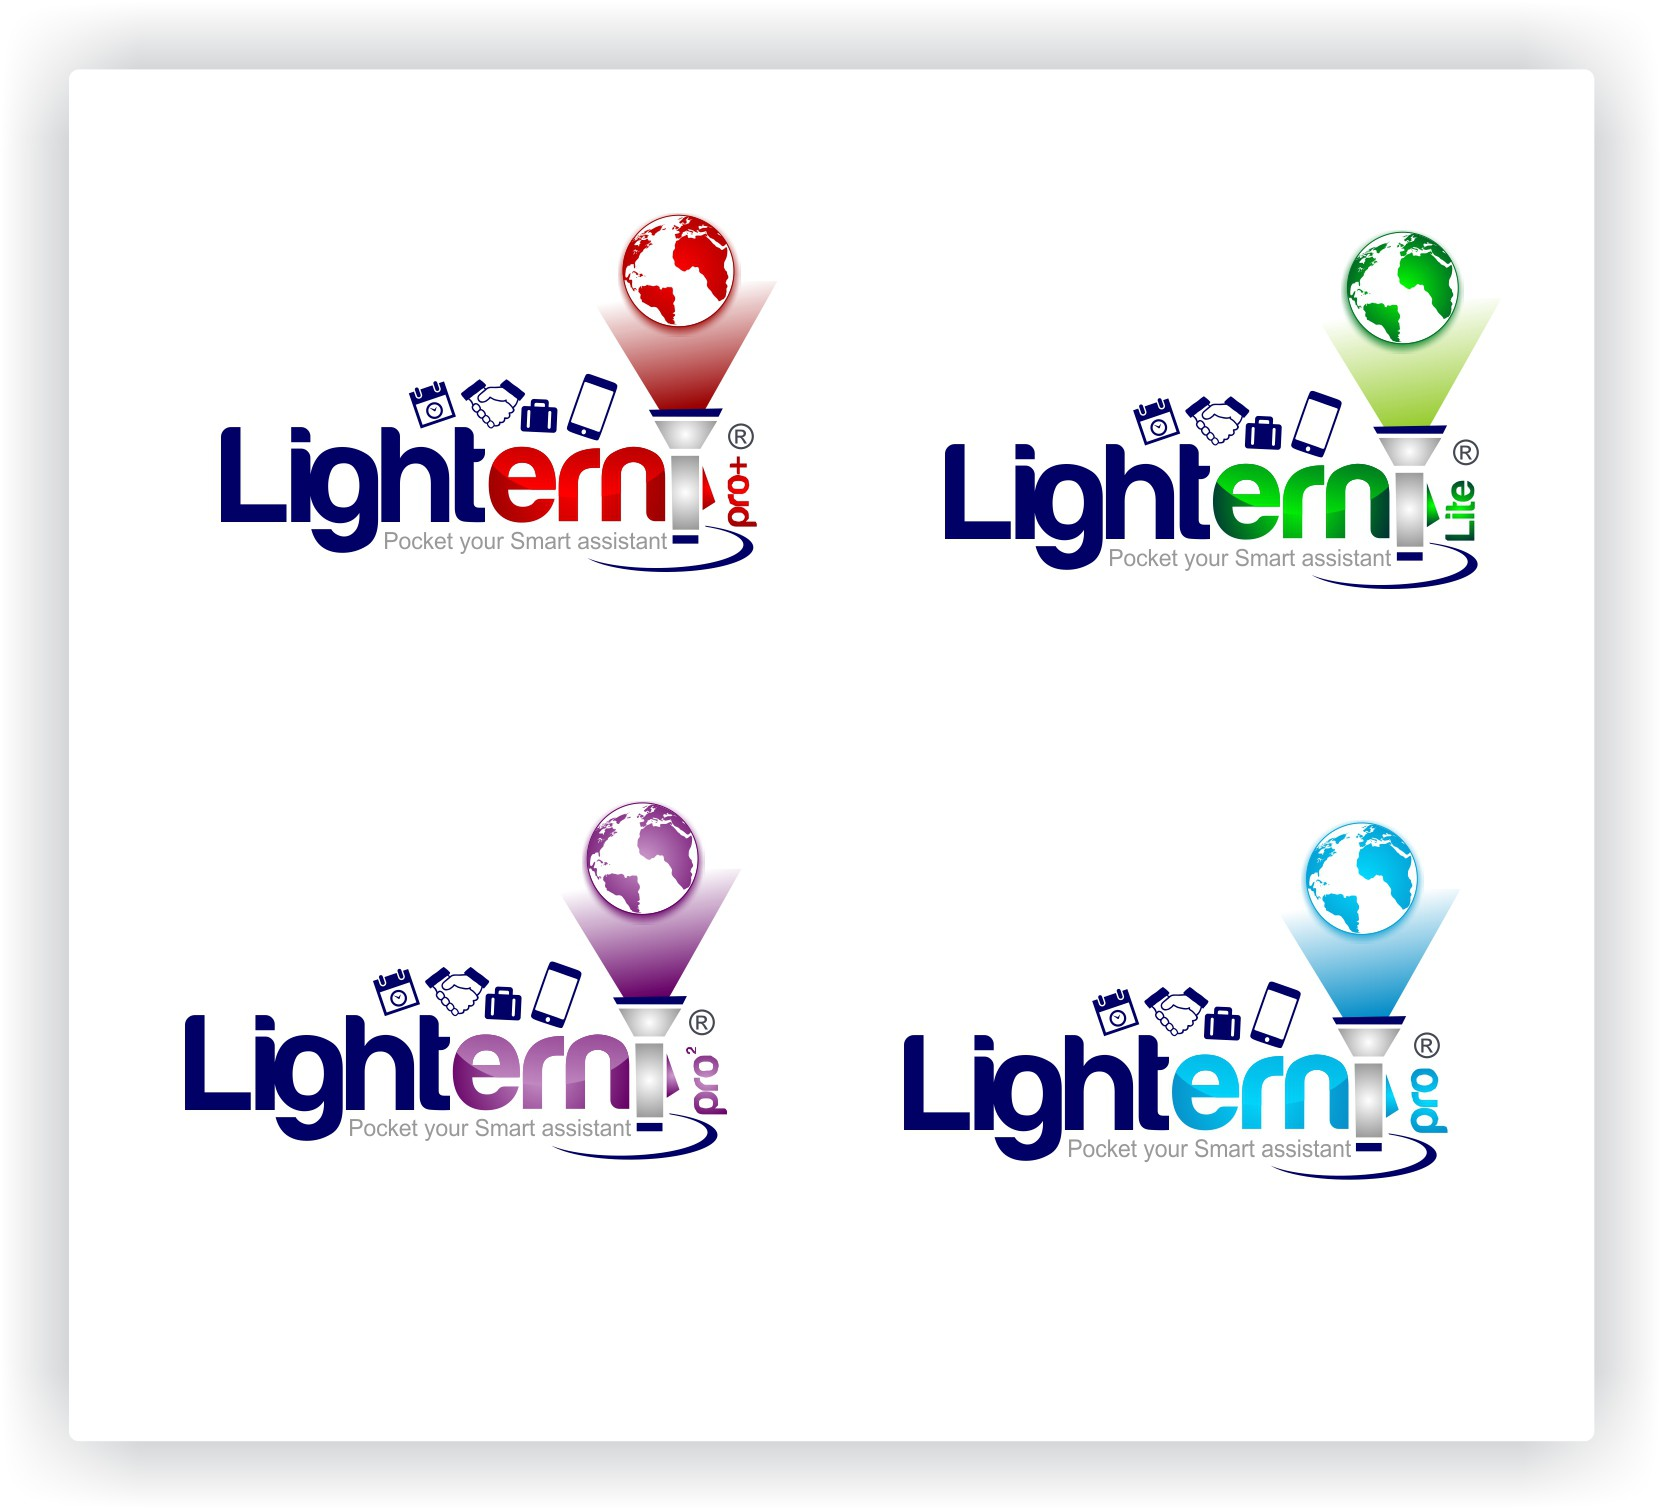 NEED YOU! Create an amazing logo for Lightern